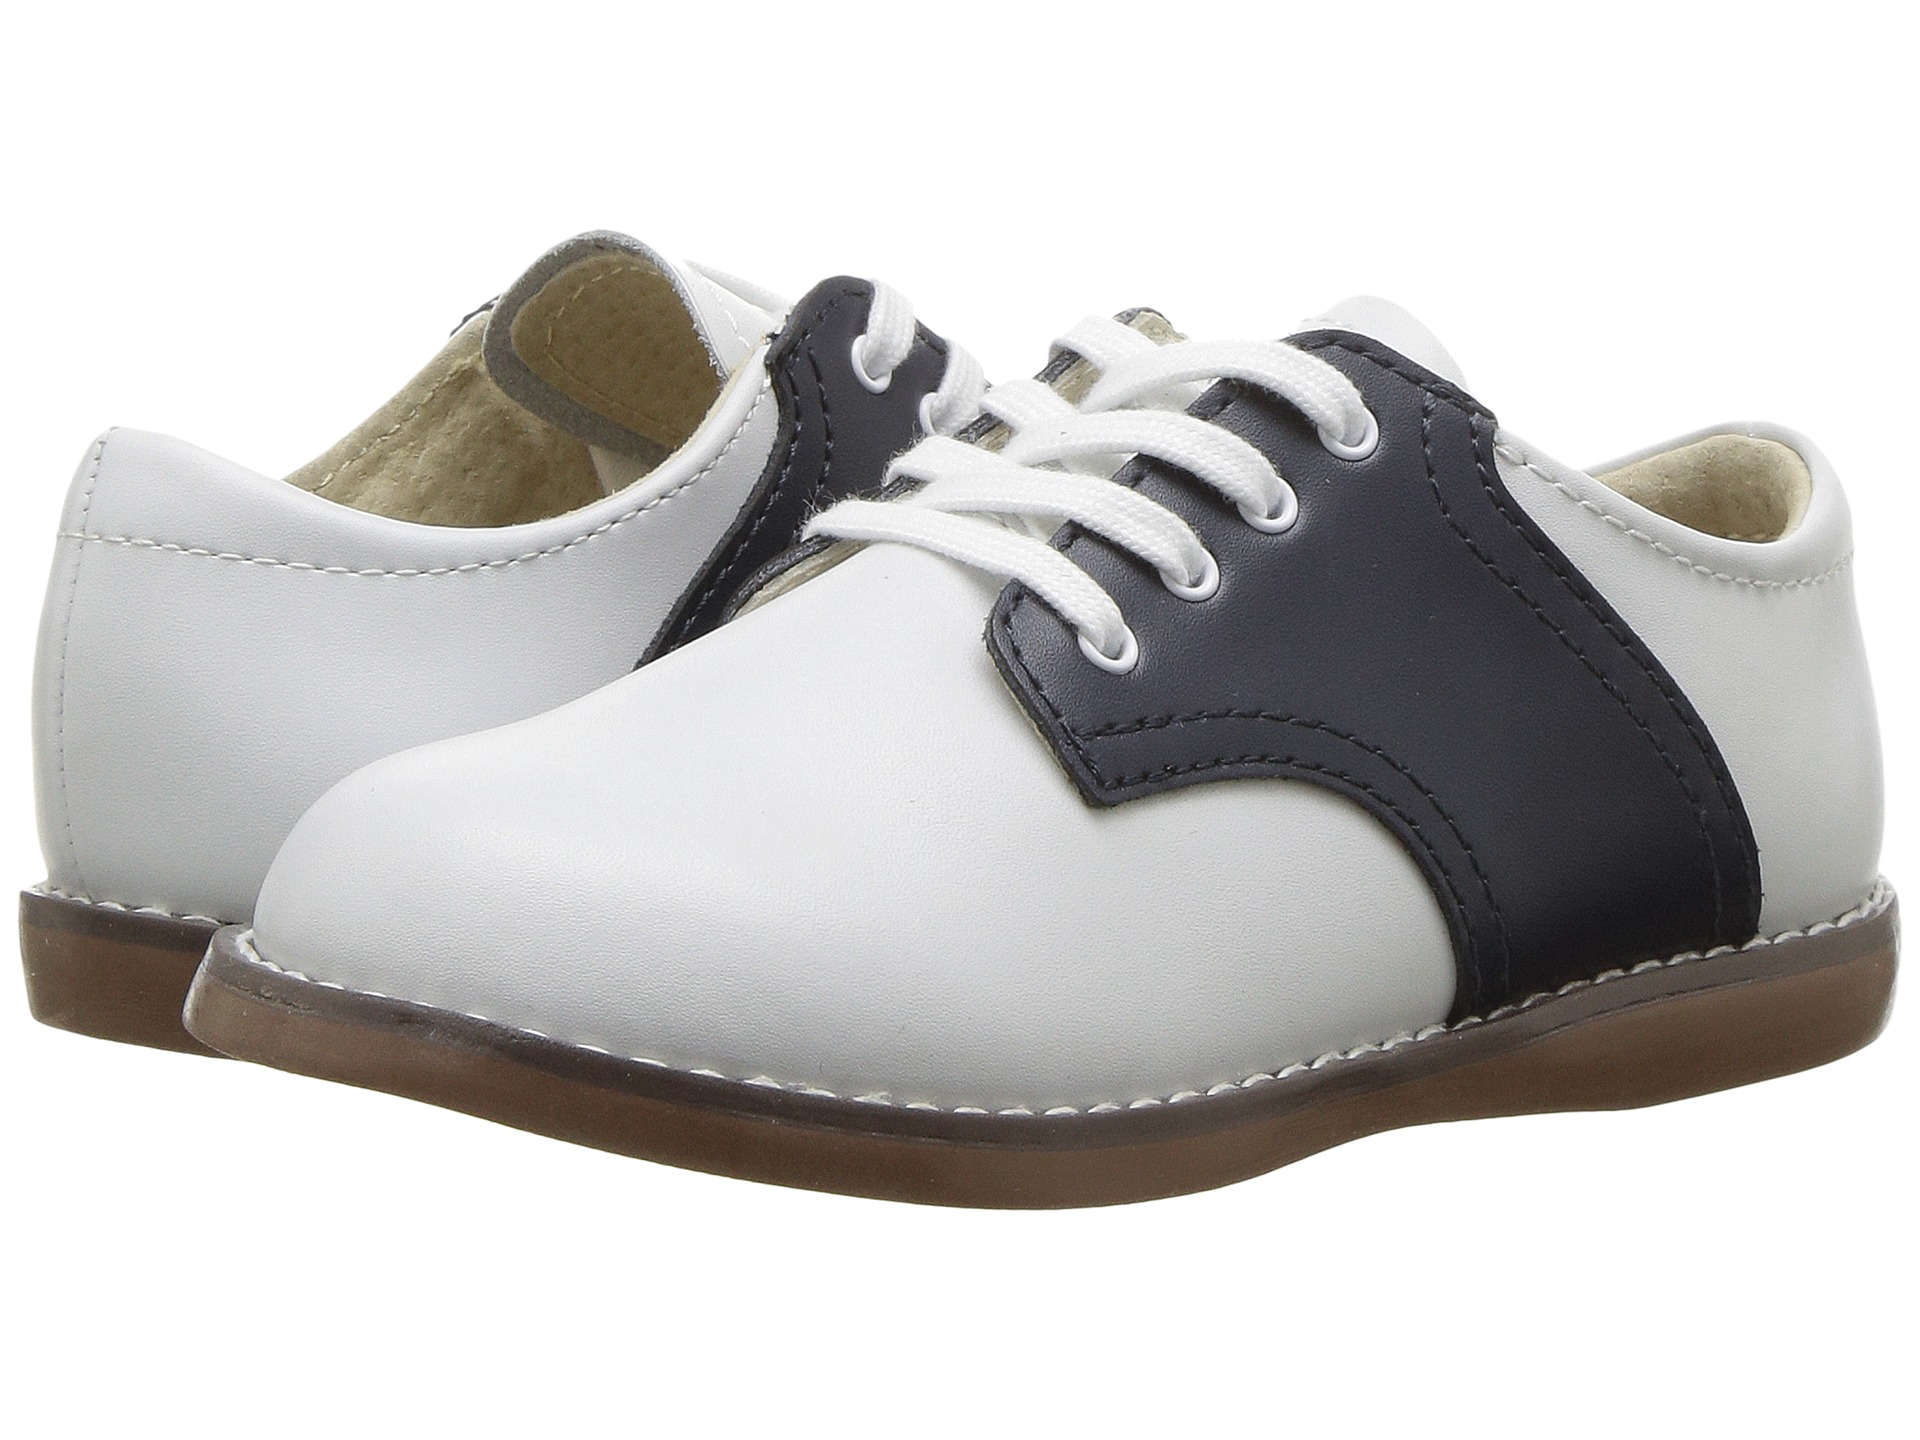 Toddler Shoes Size W